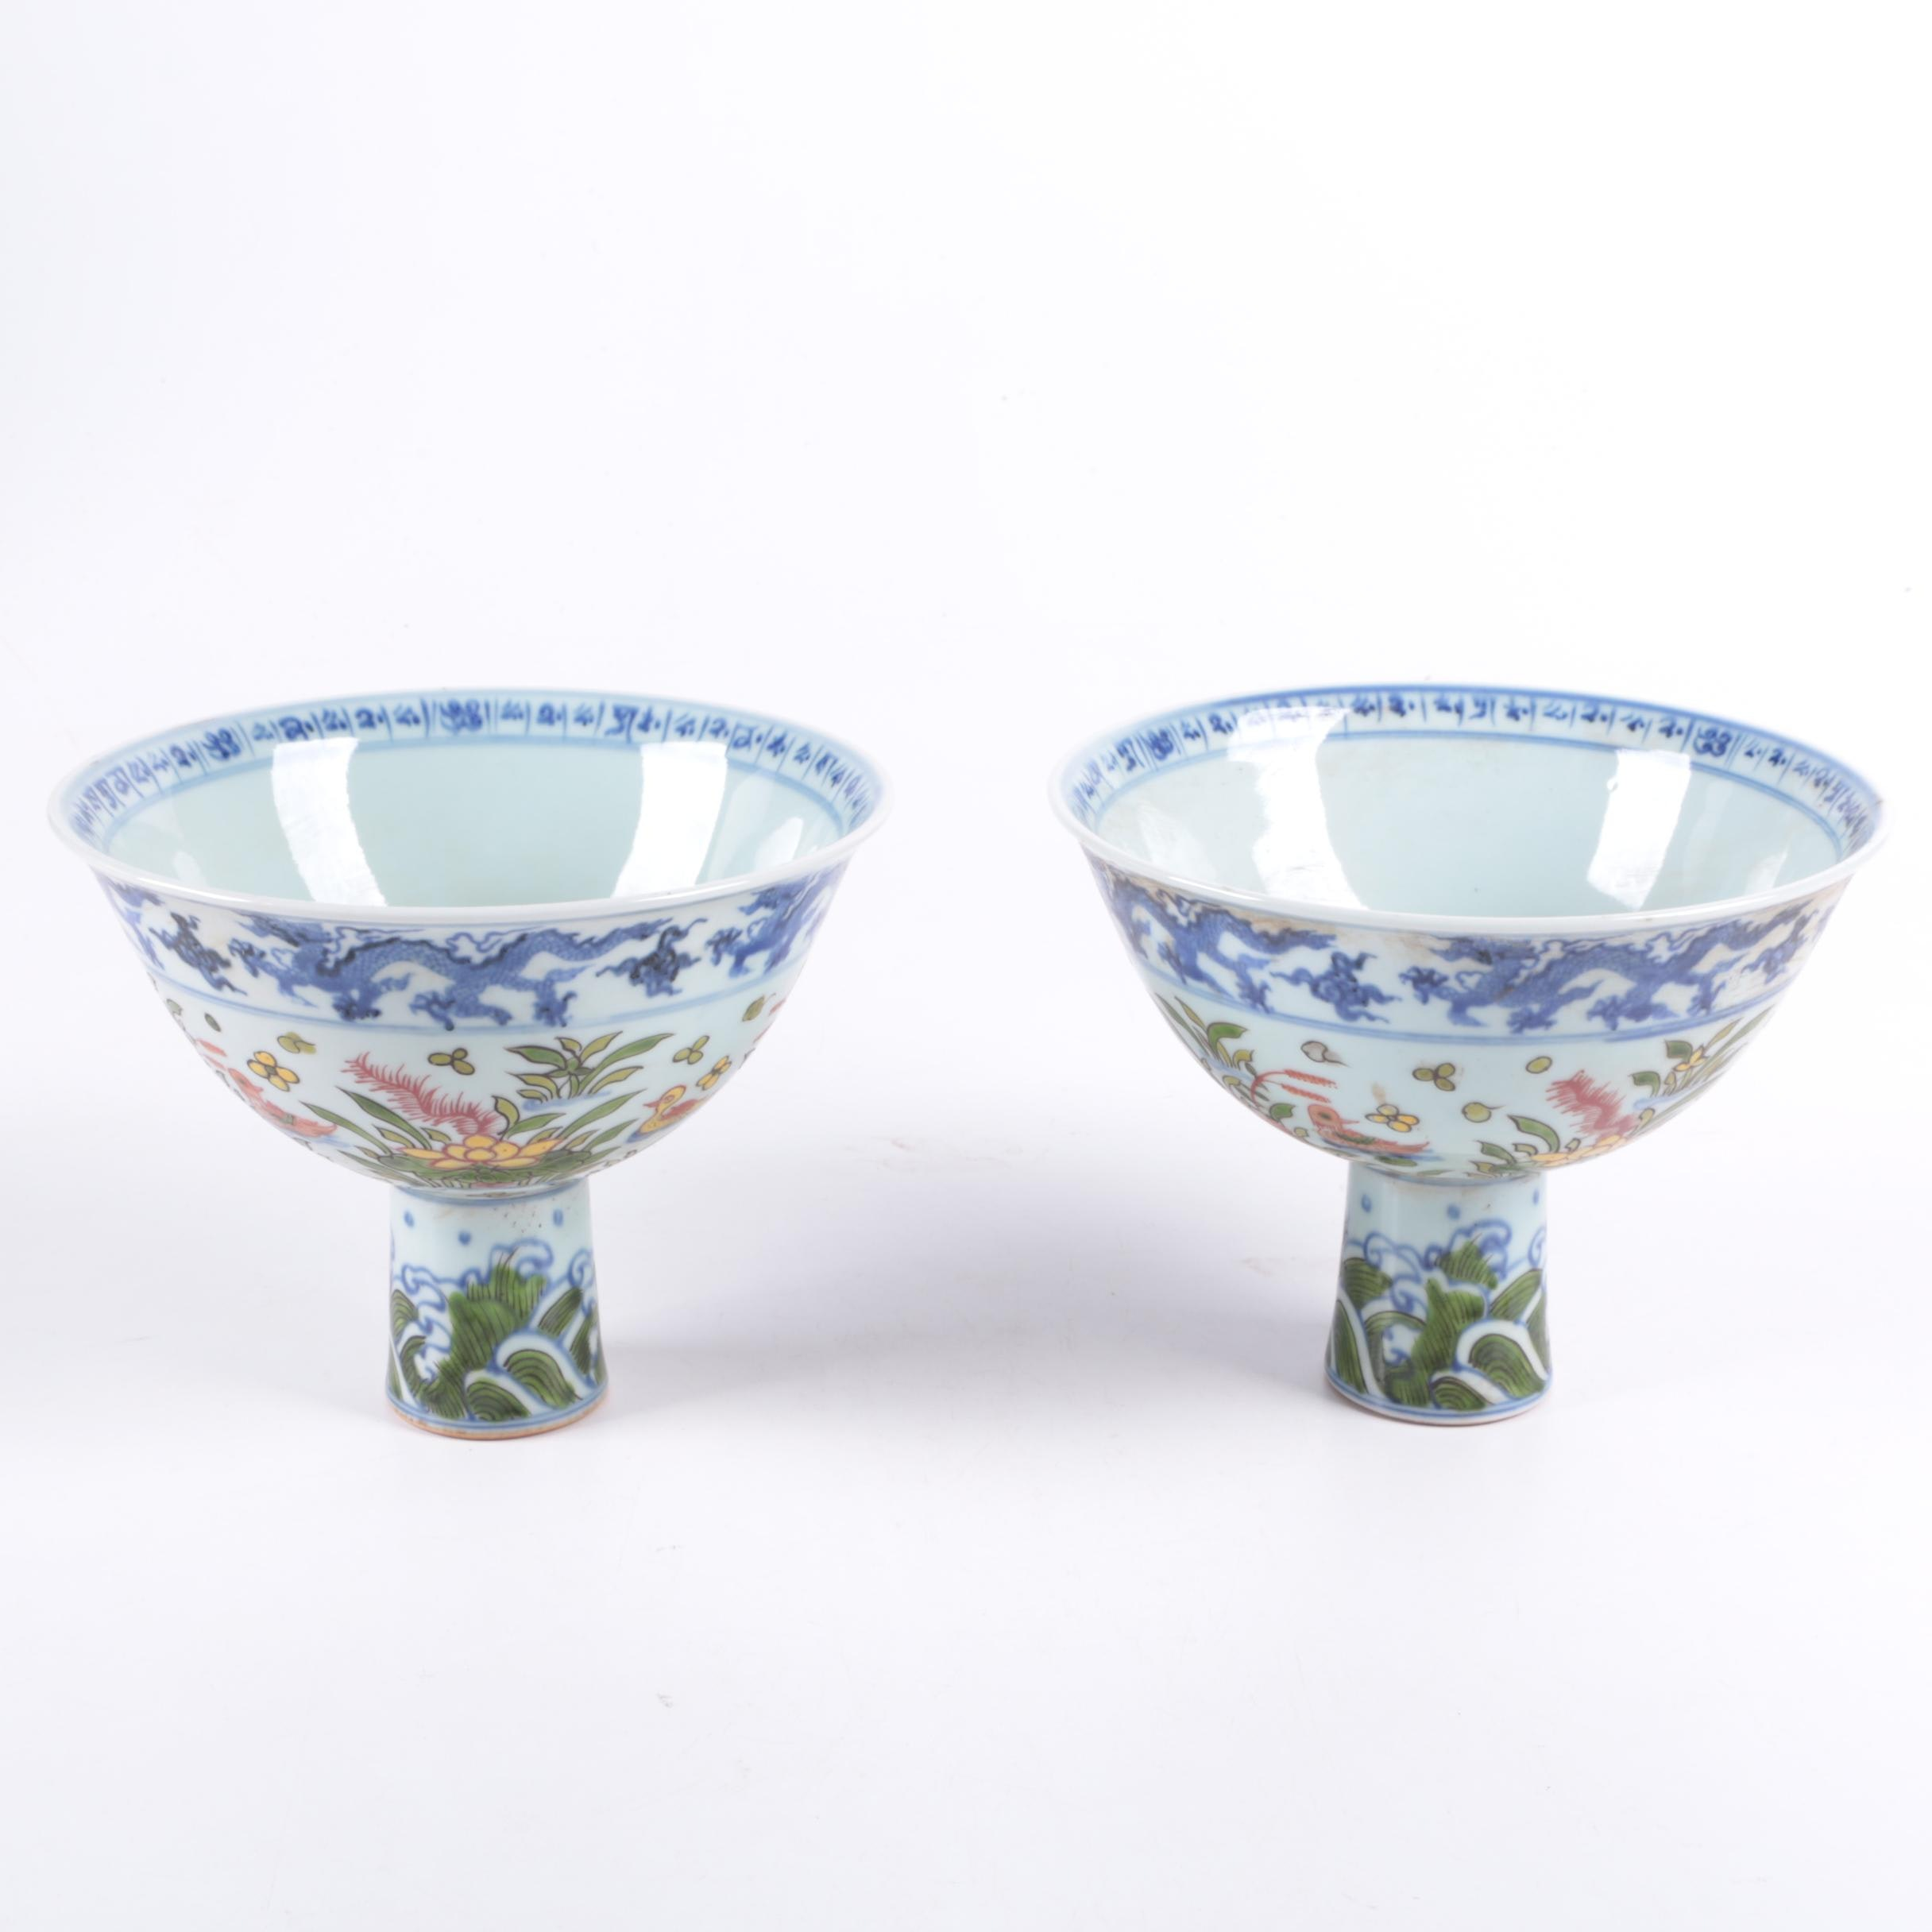 Pair of Chinese Tazza Pedestal Bowls